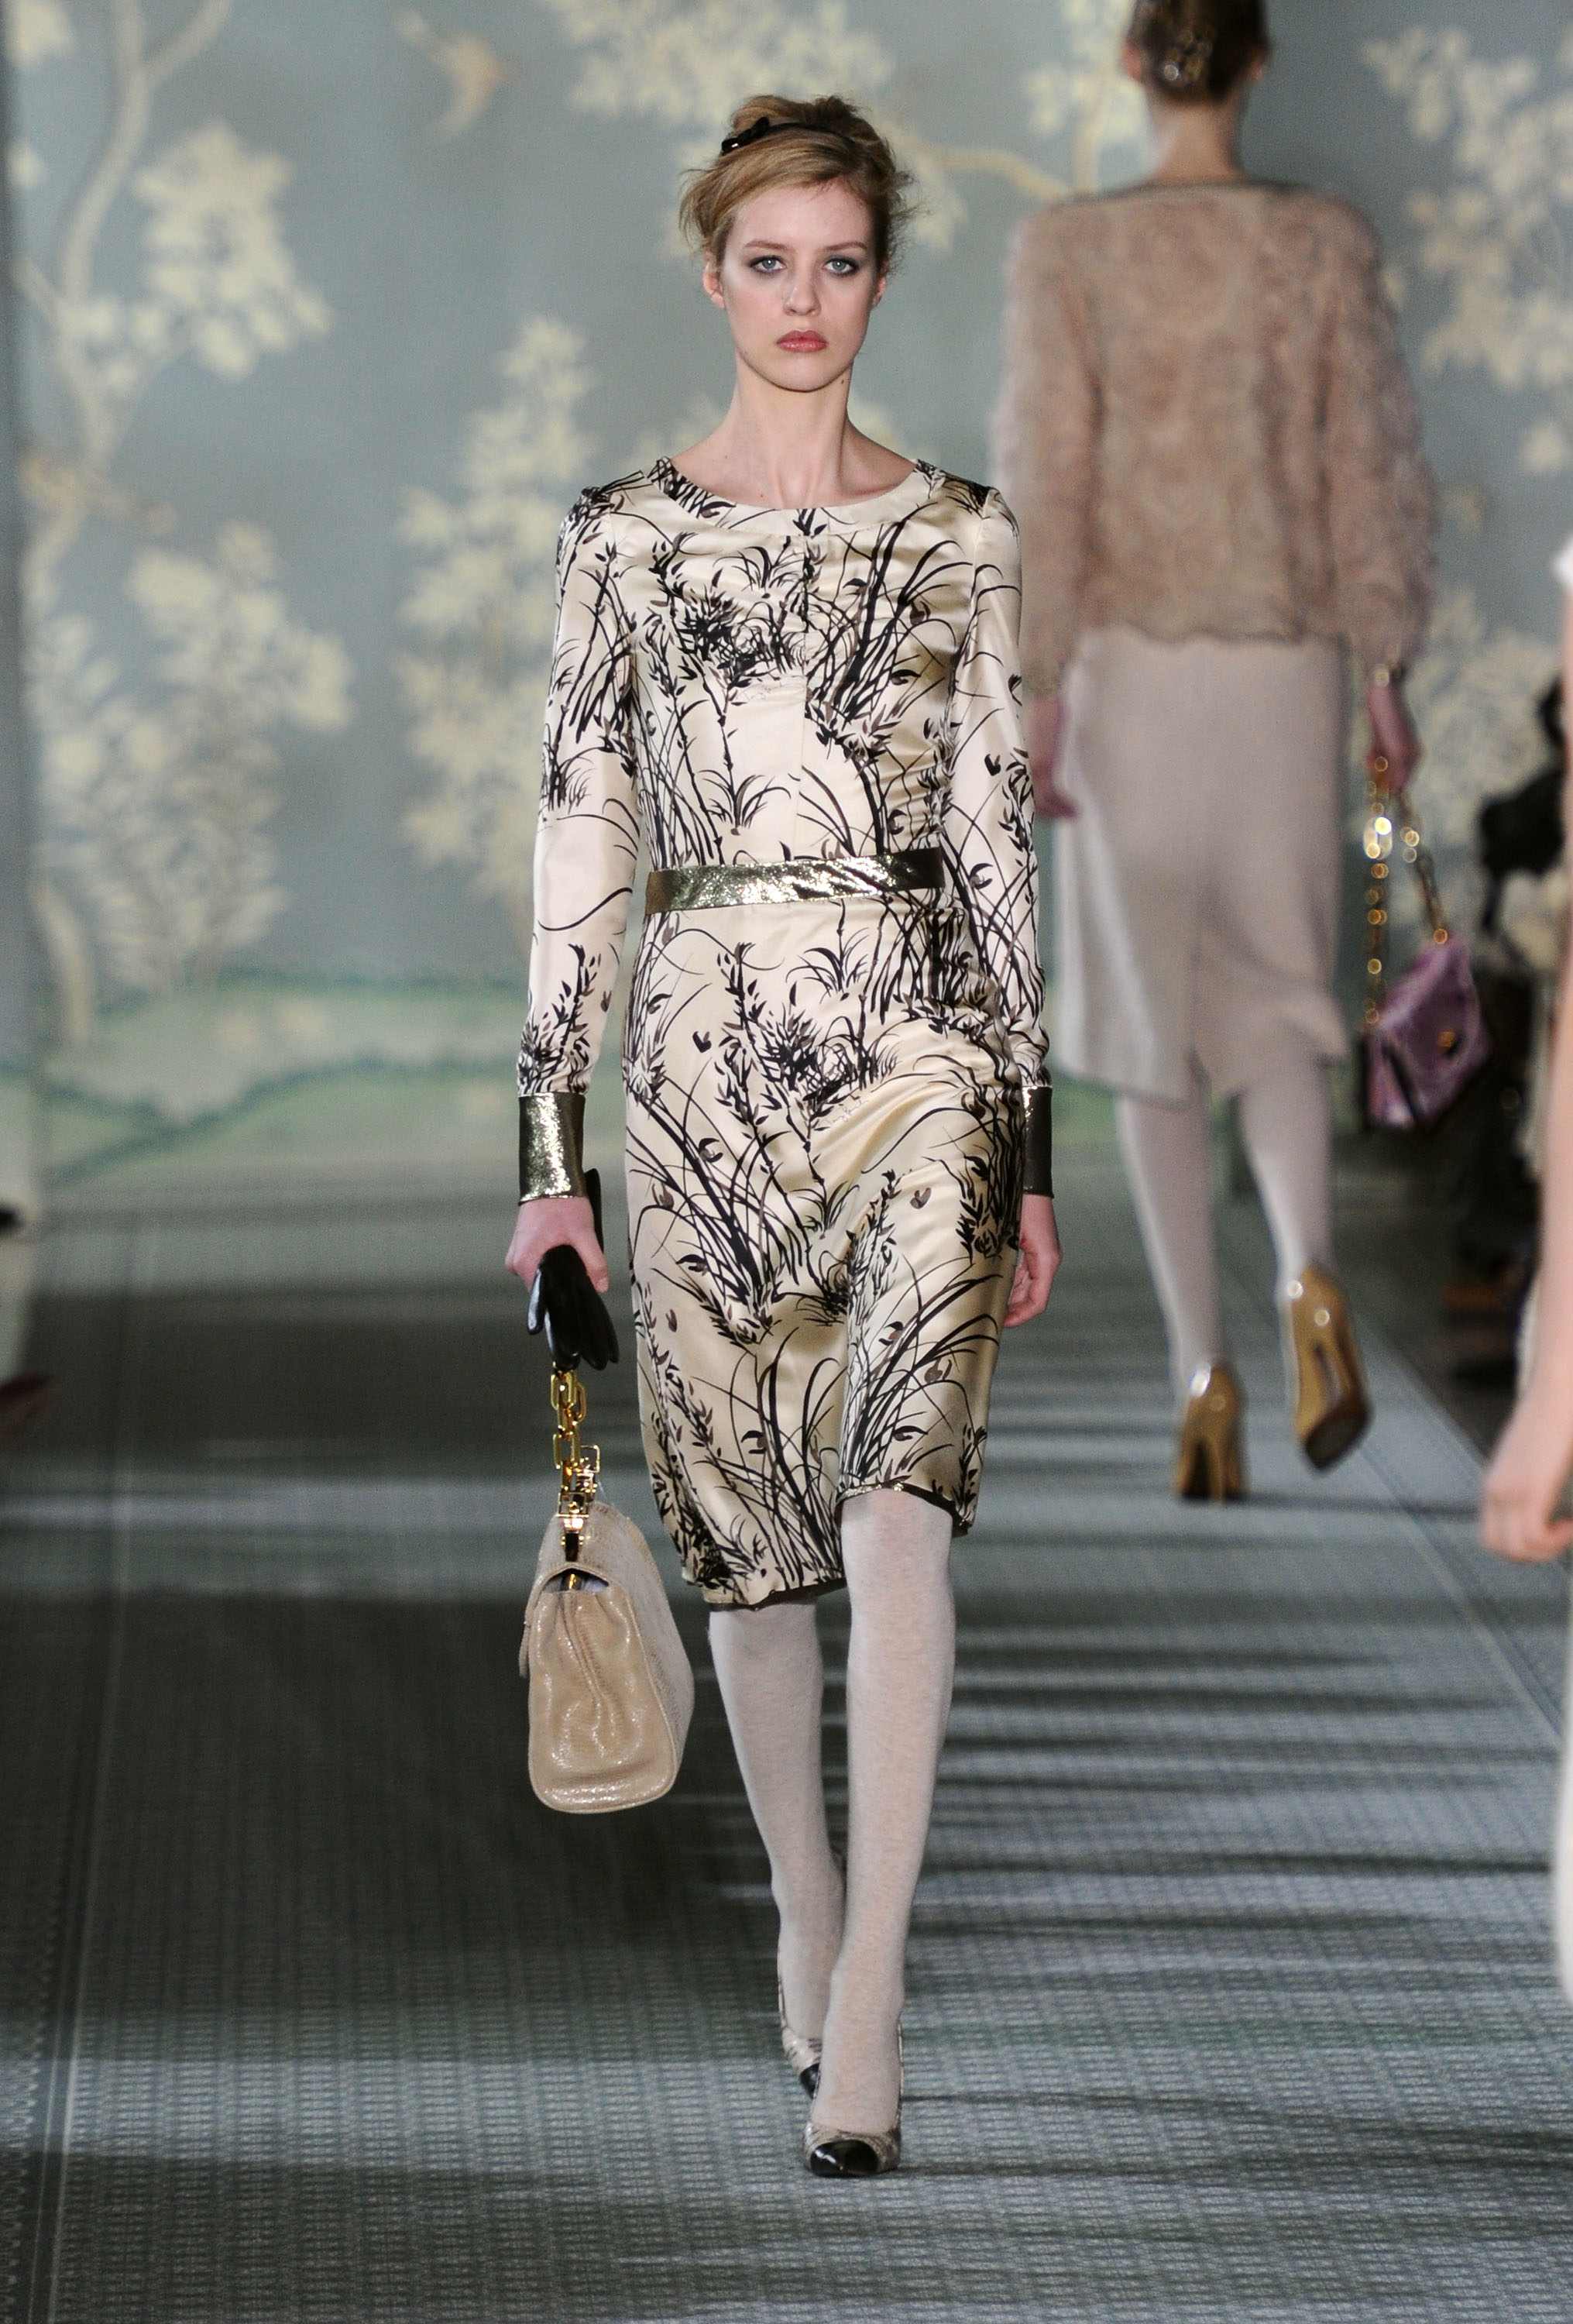 Американский модельер Тори Барч (Tory Burch) на Mercedes-Benz Fashion Week. Фото: Mike Coppola/Getty Images